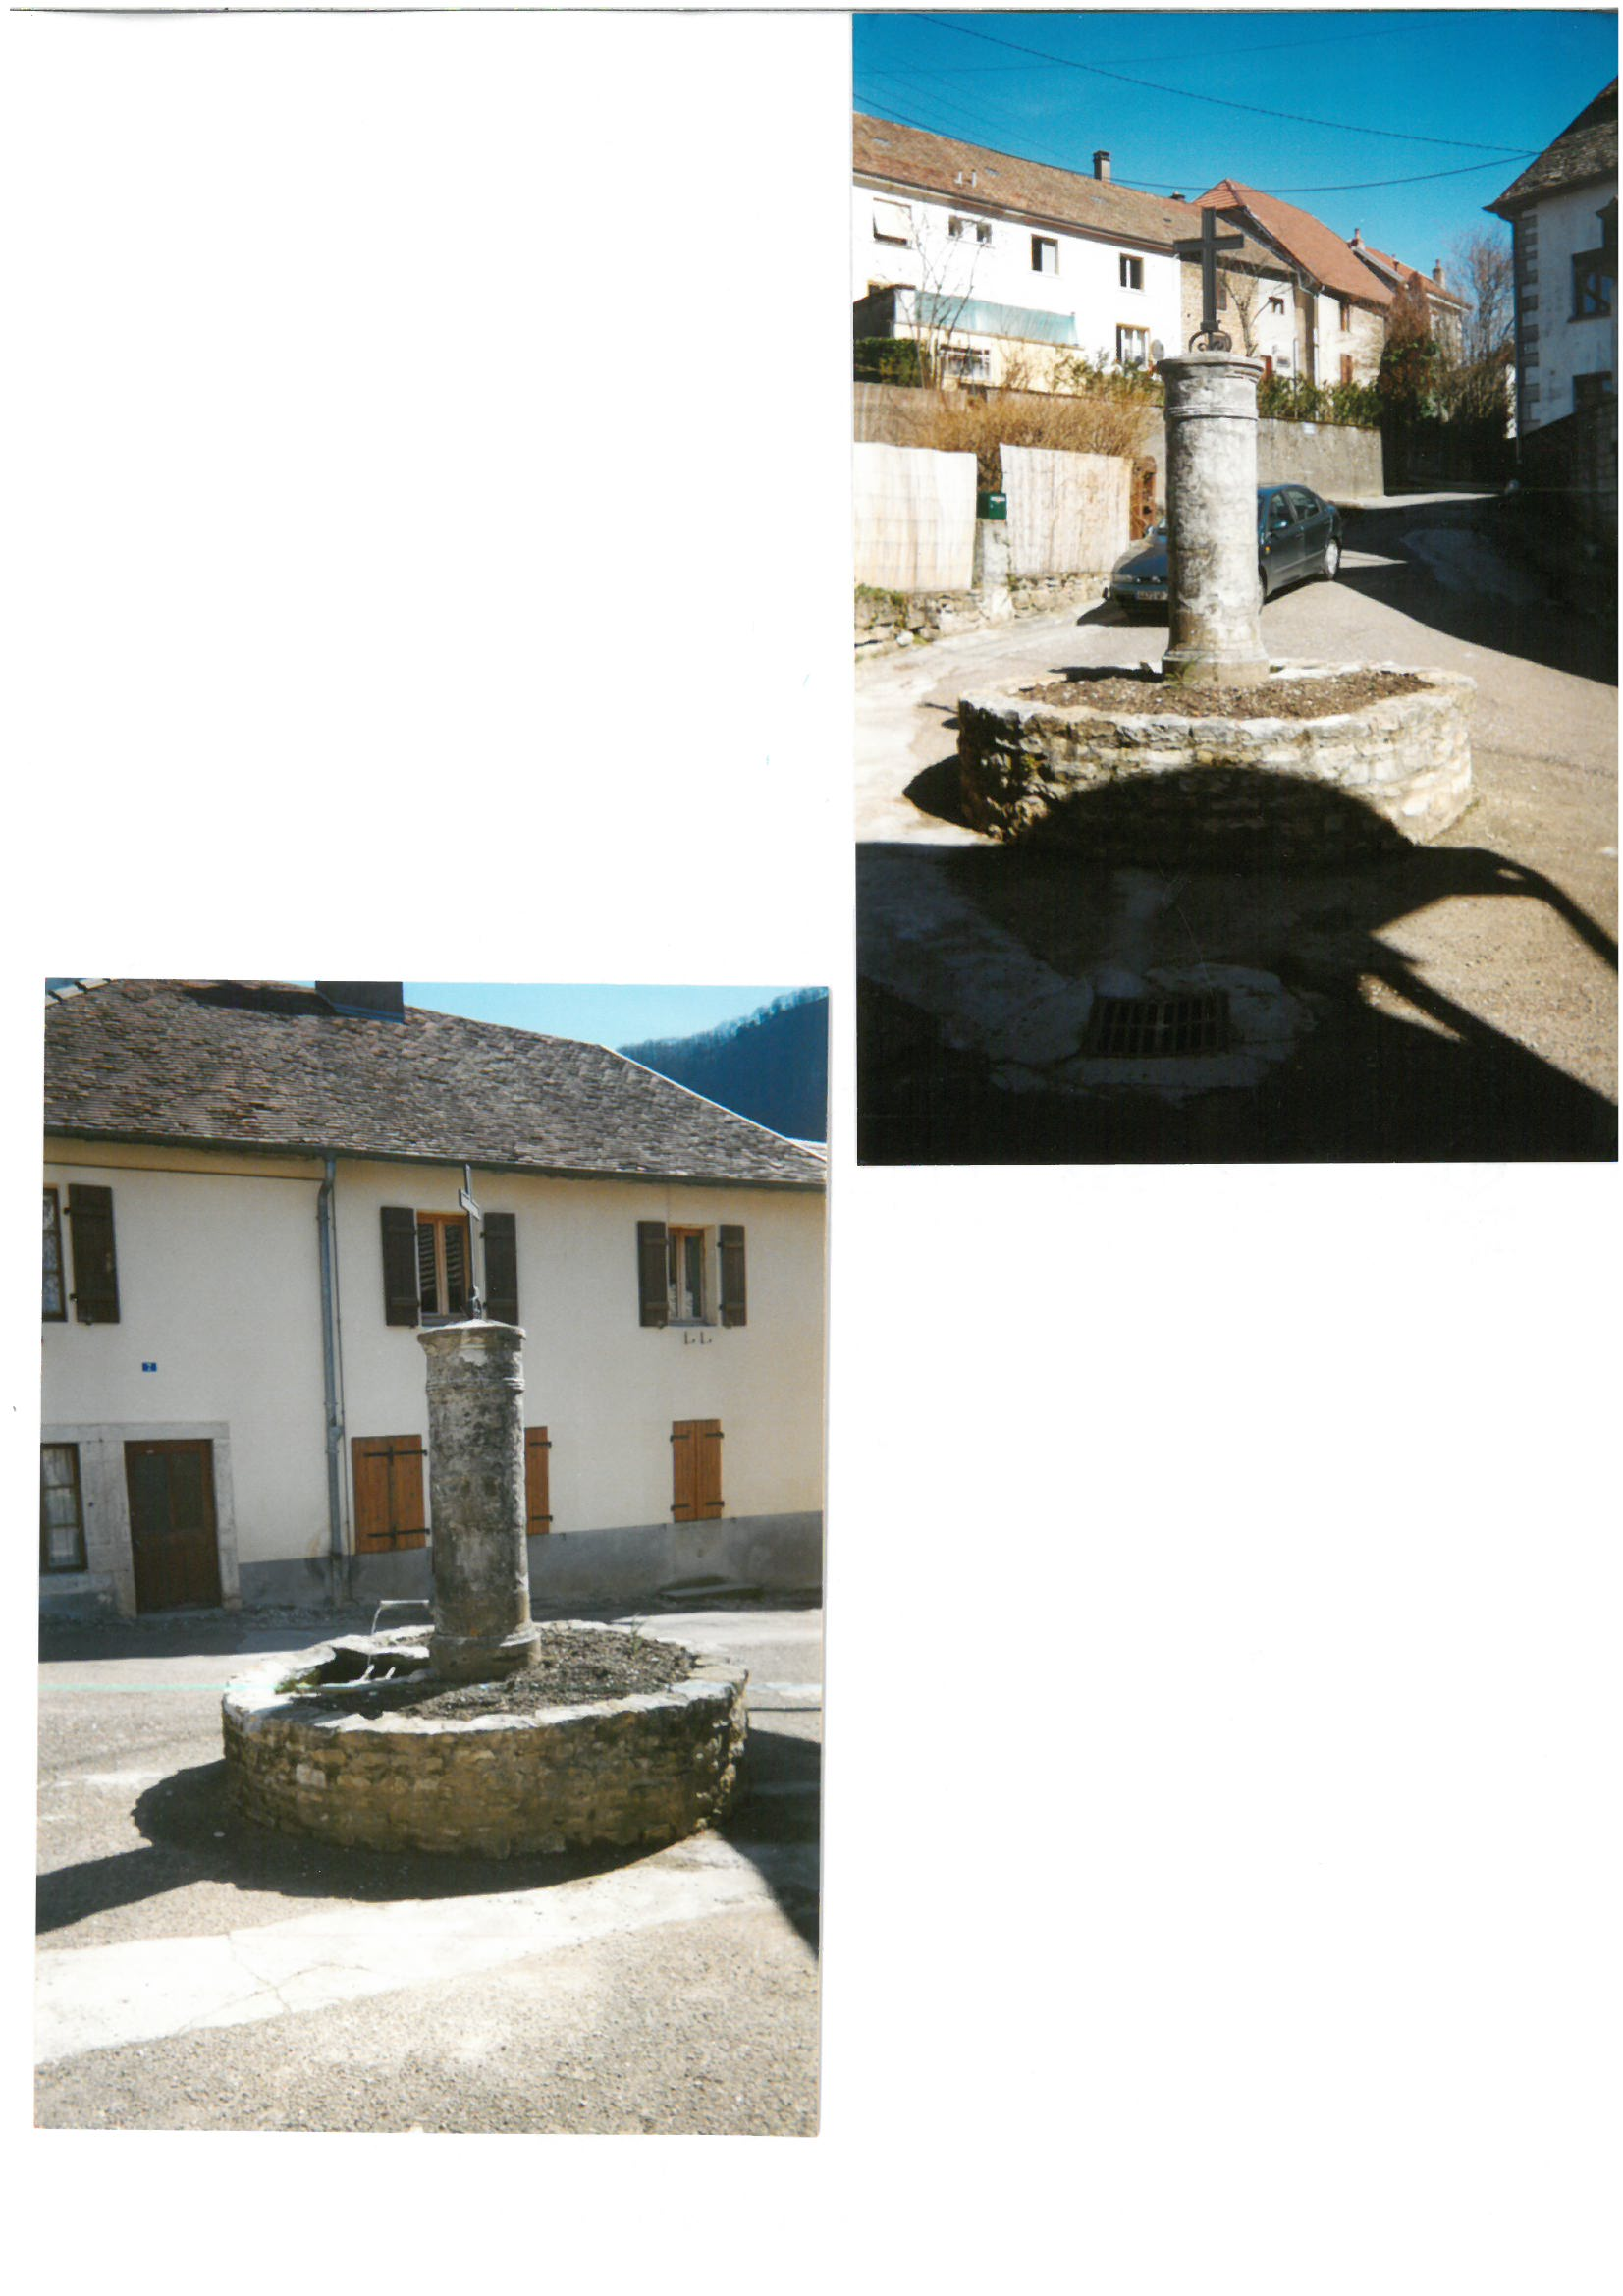 fontaine-photos-avant-travaux-2006-2